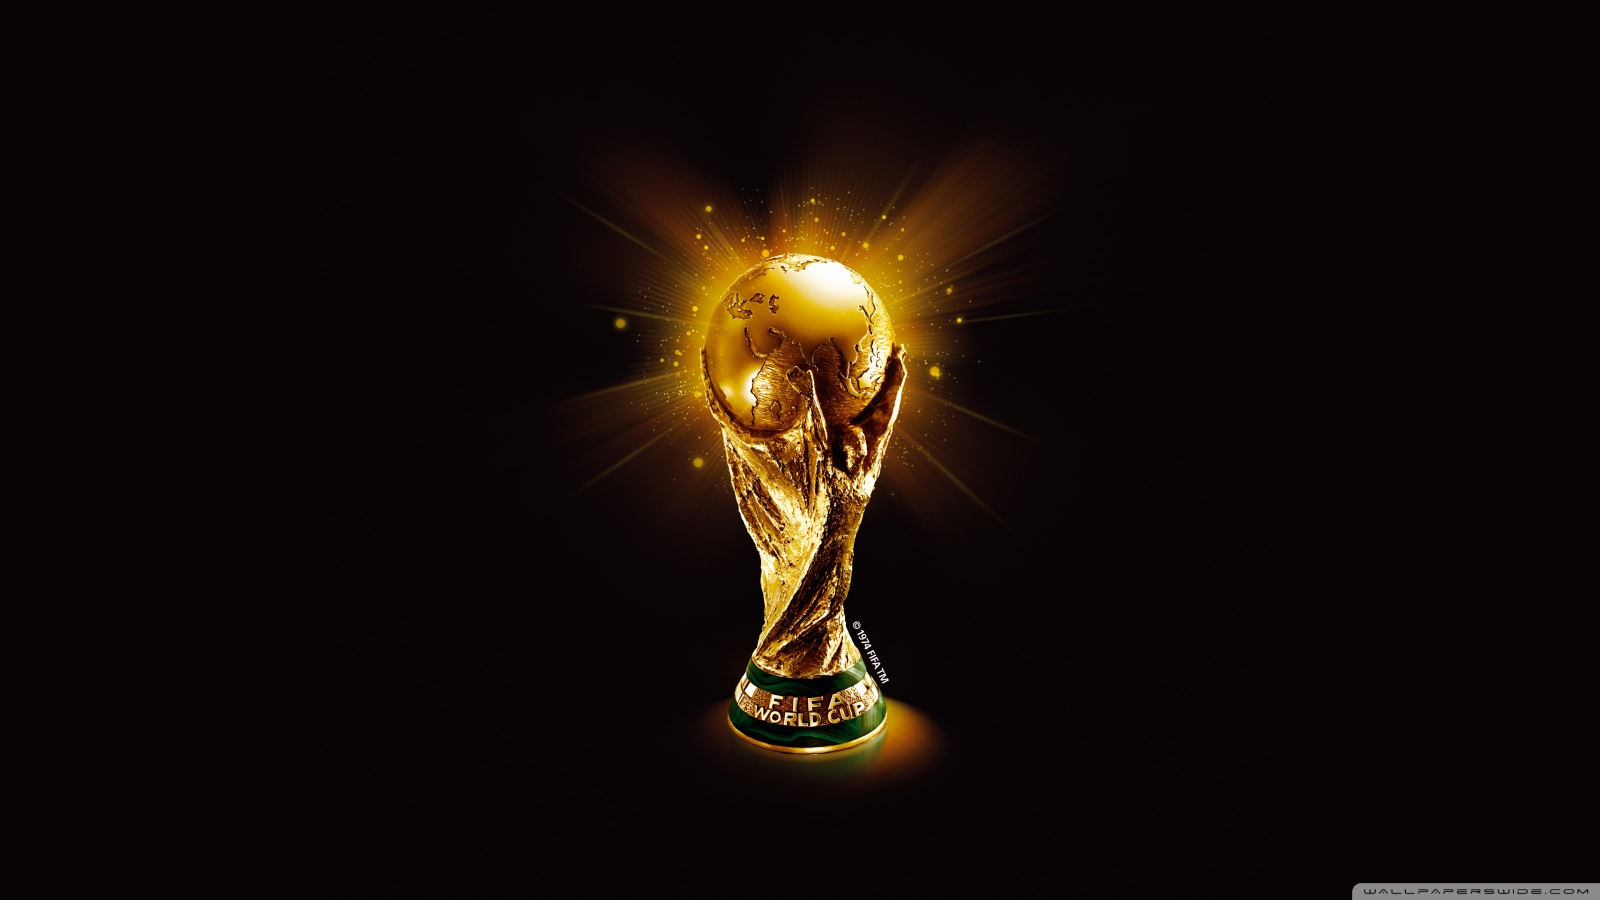 wallpaper copa fifa world player